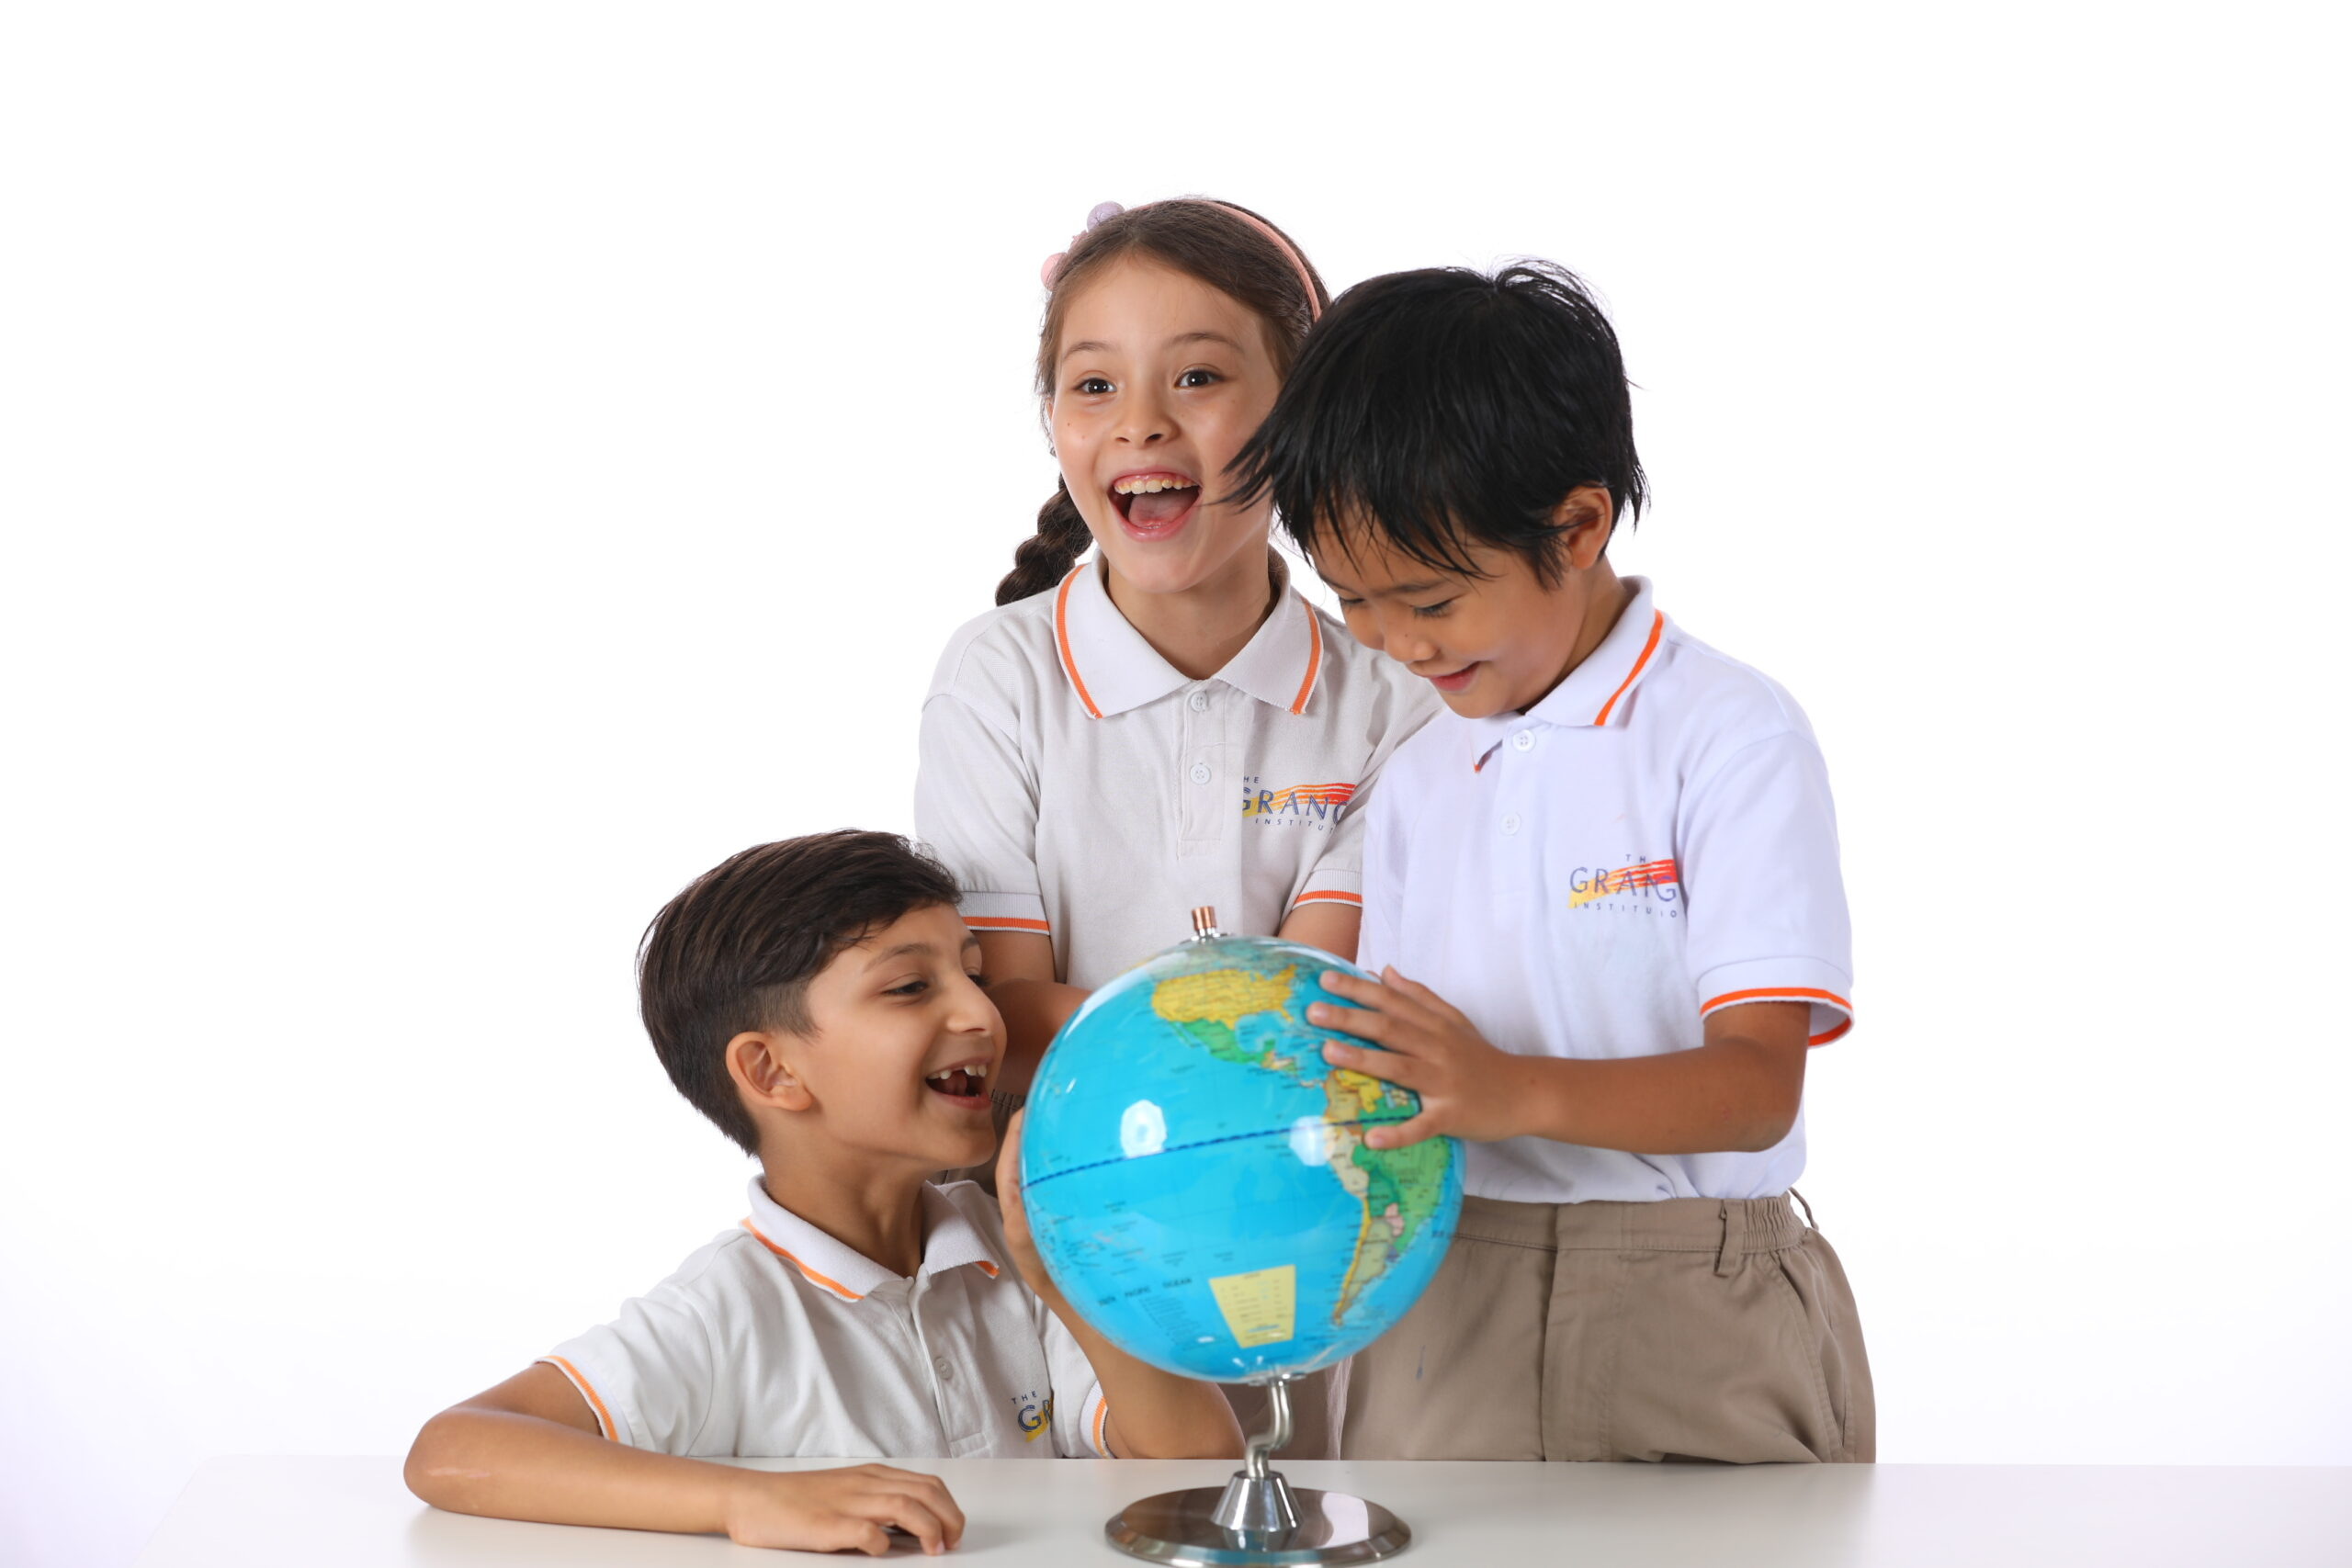 The Grange promotes a global school community within their diverse learning community